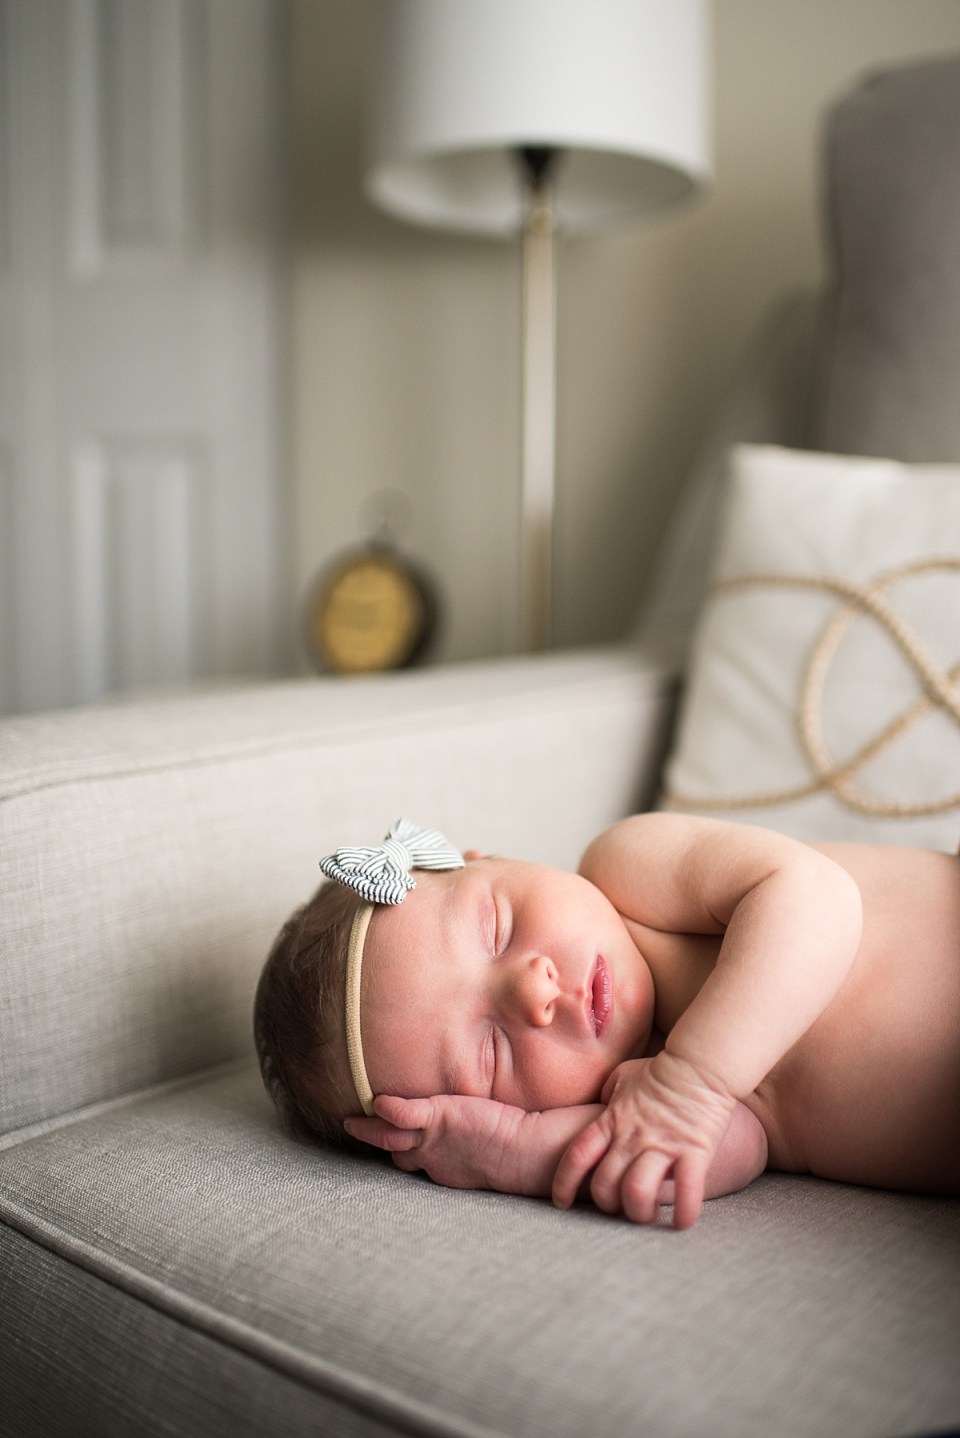 Newborn Photograph by Erin Tetterton Photography